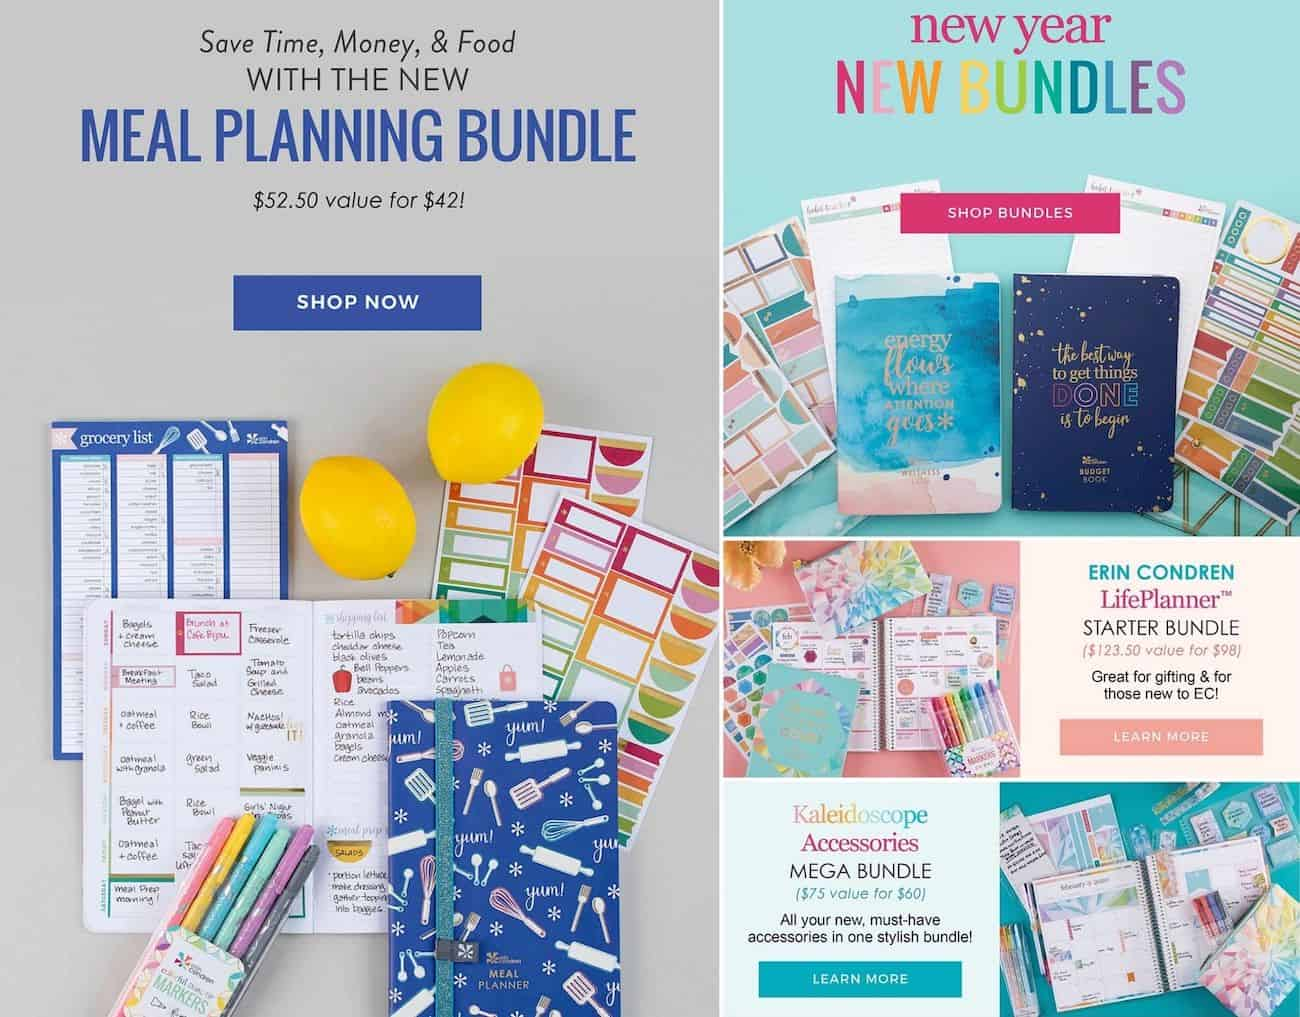 Erin condren bundle deals for Black Friday and Cyber Monday